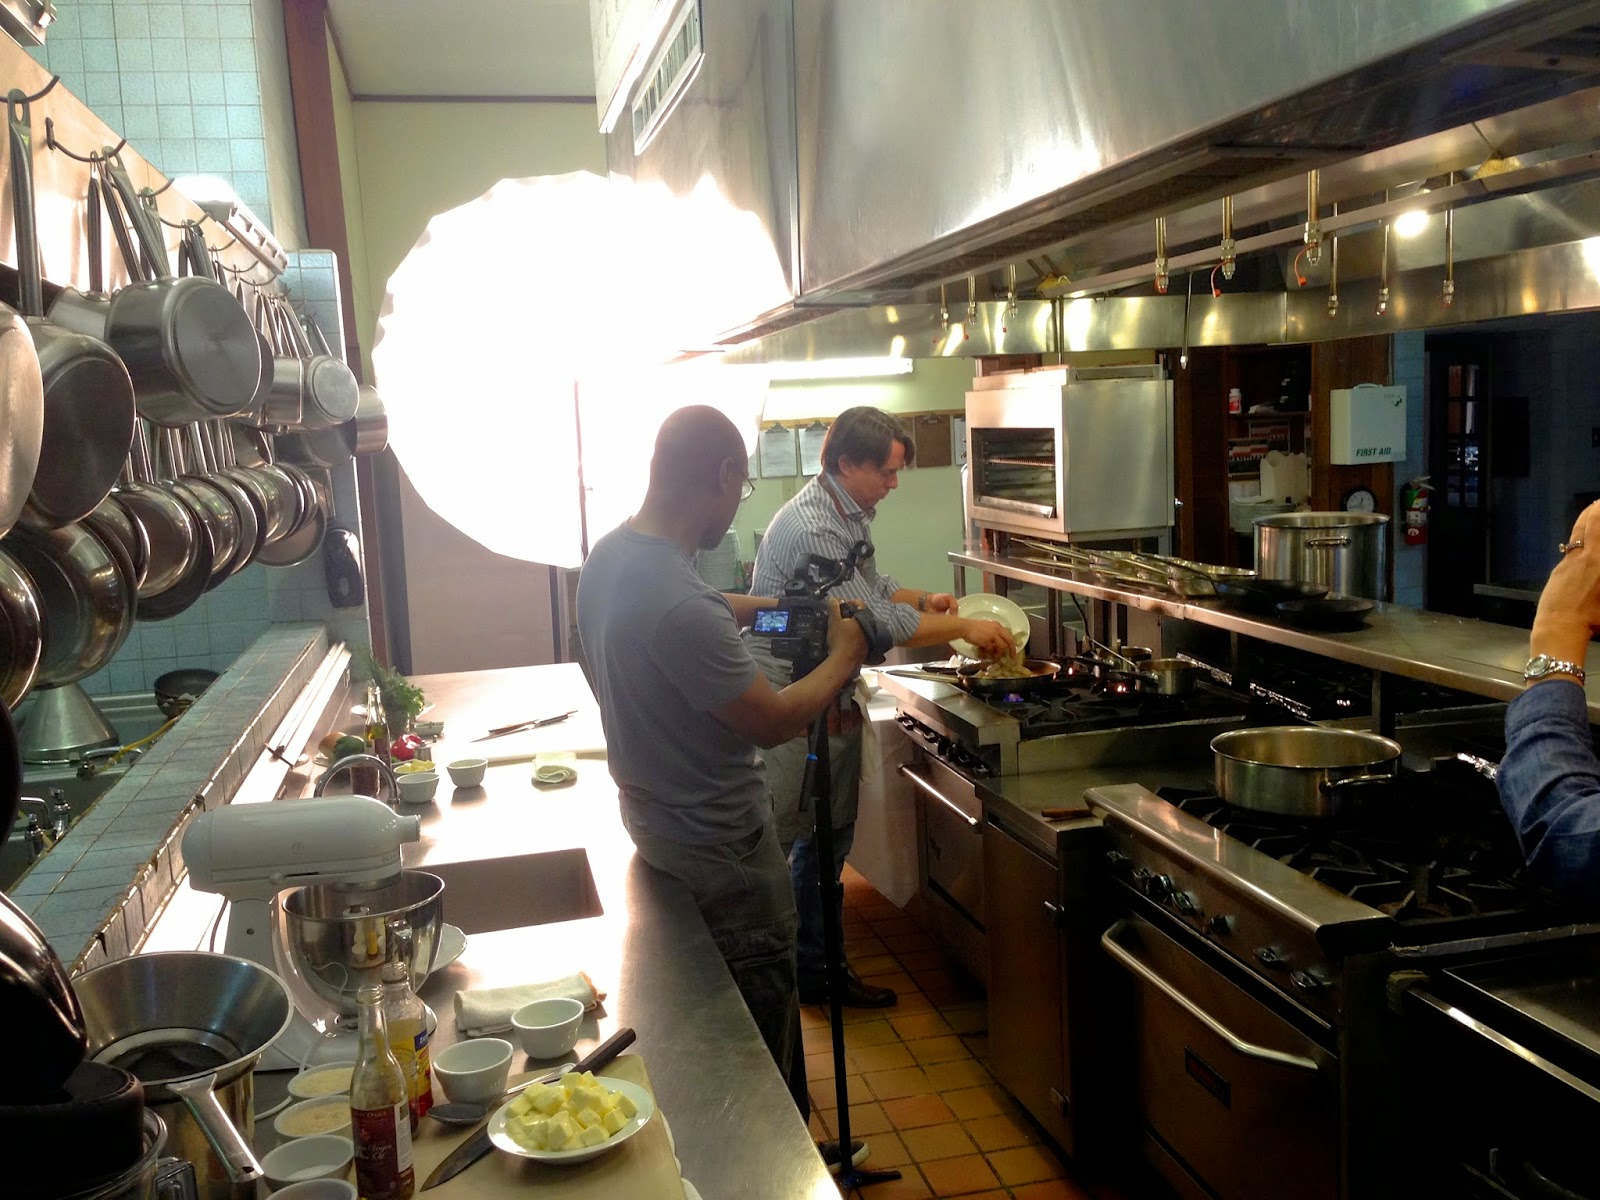 Dan Jones films Chef John Besh creating one of his signature dishes